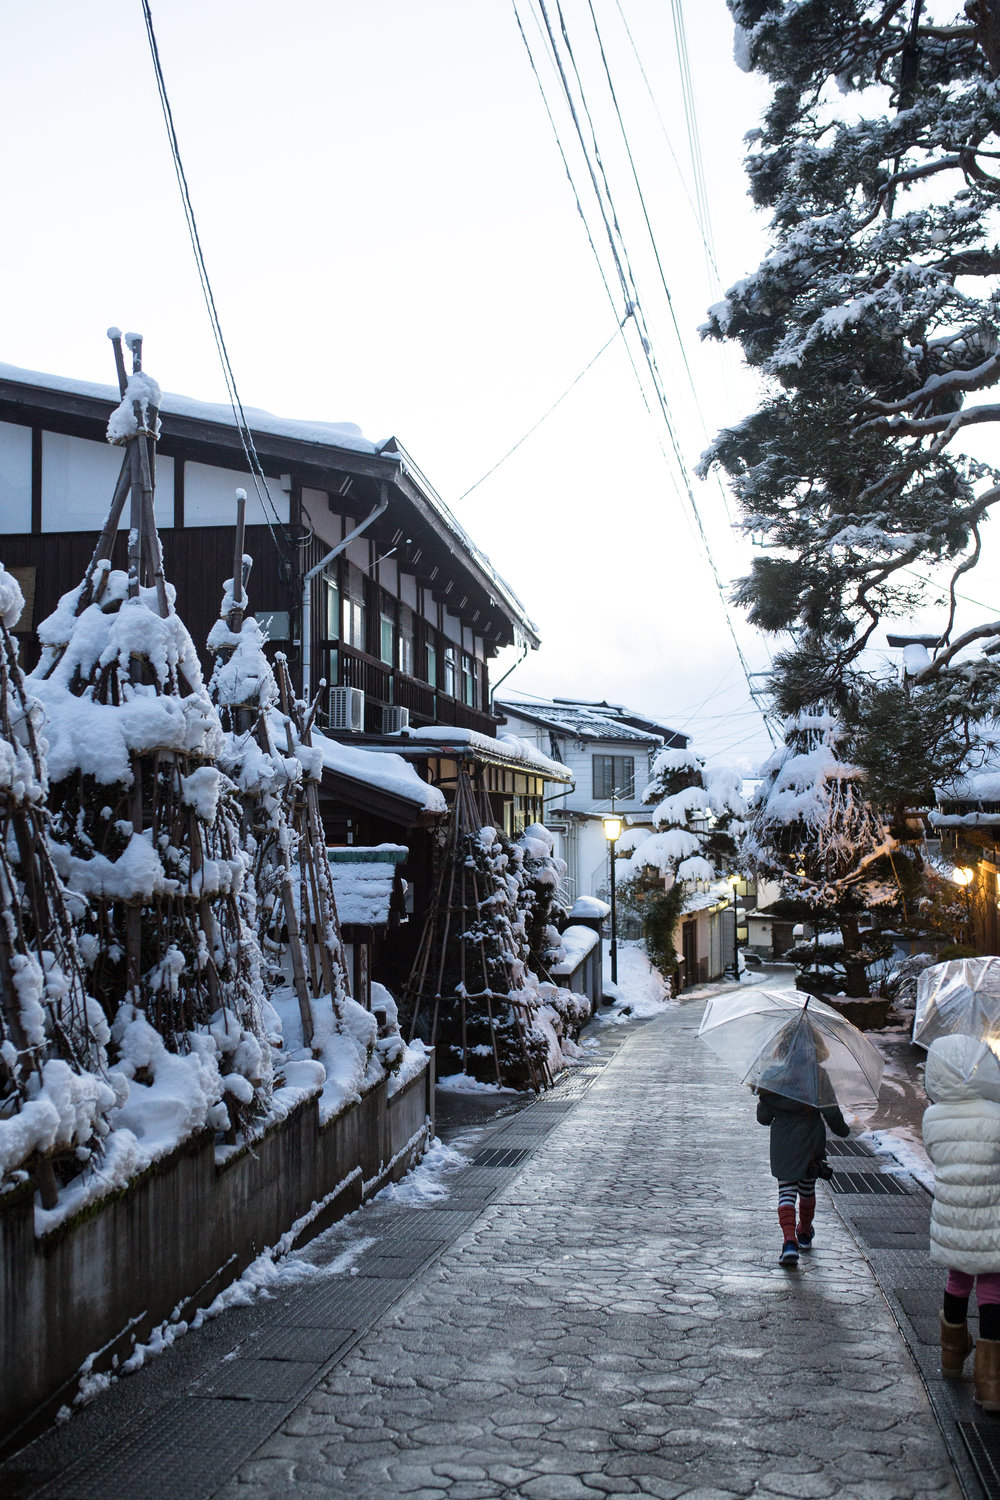 Nozawa Onsen, and an example of the supportive structures that are built around the trees in the villiage